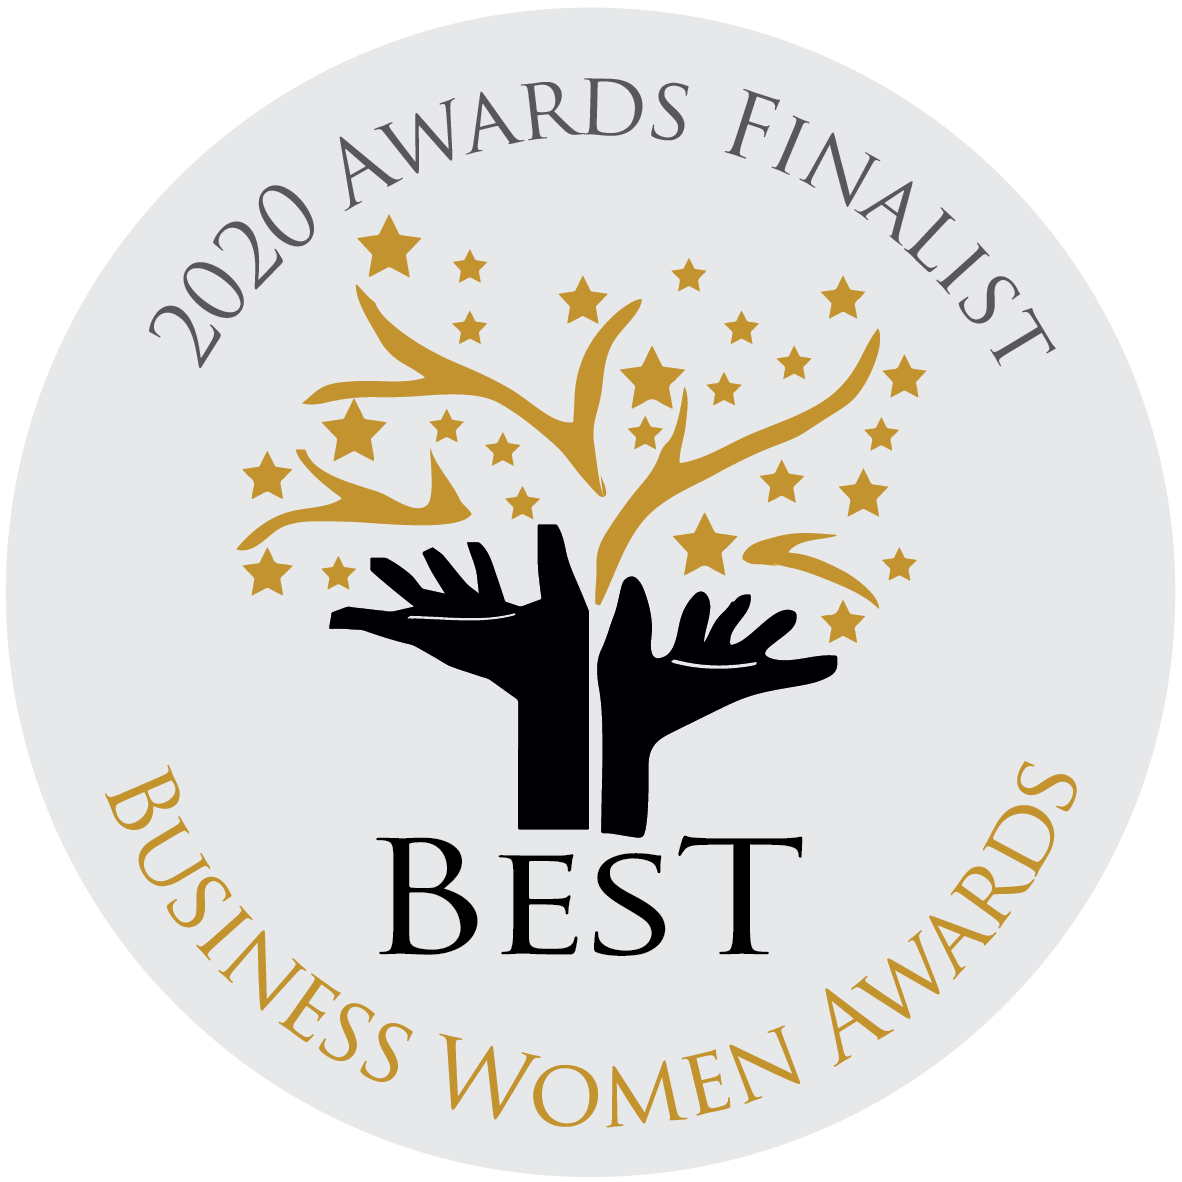 Best Business Women Awards 2020 finalist